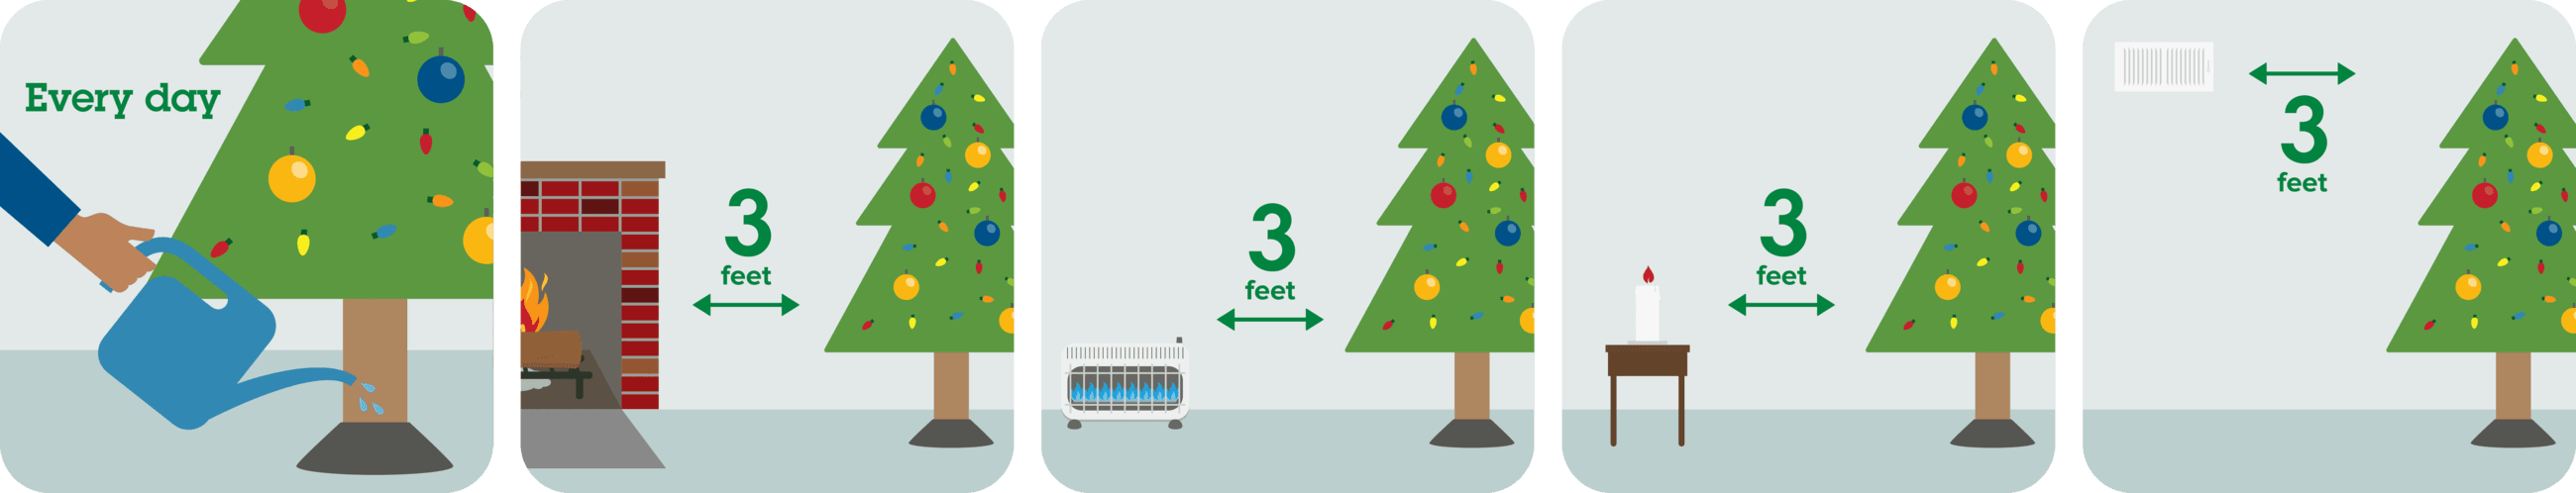 Holiday Tree Pictograph